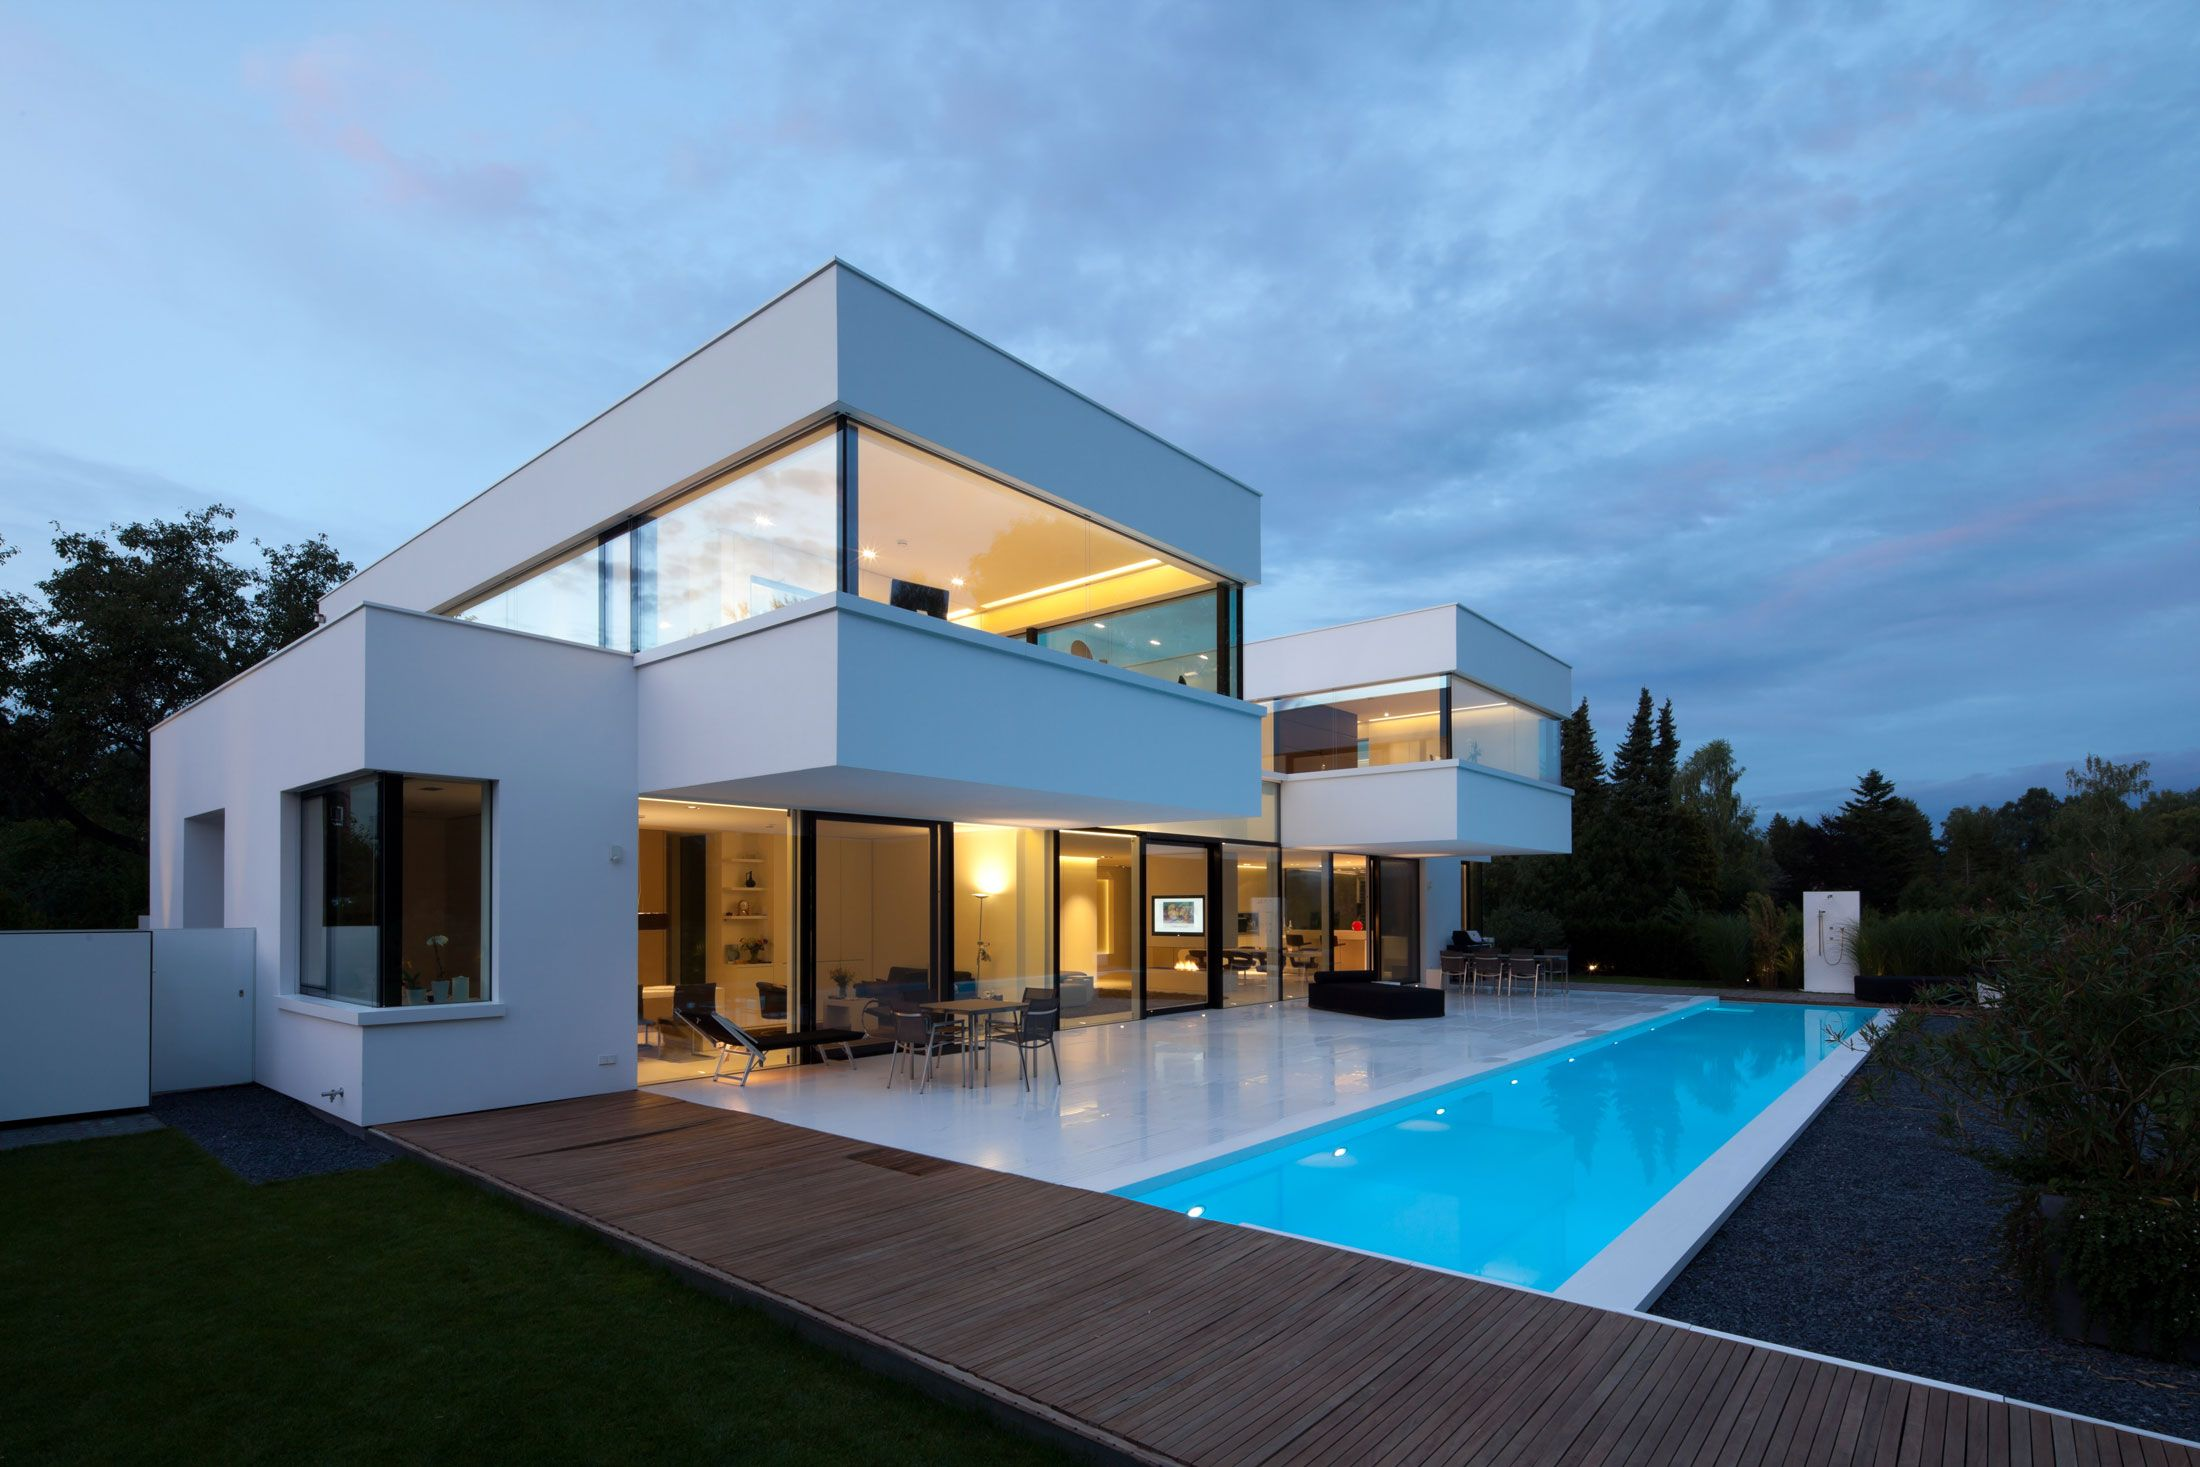 Best Images About Cantilevered Houses On Pinterest House - Architectural design homes